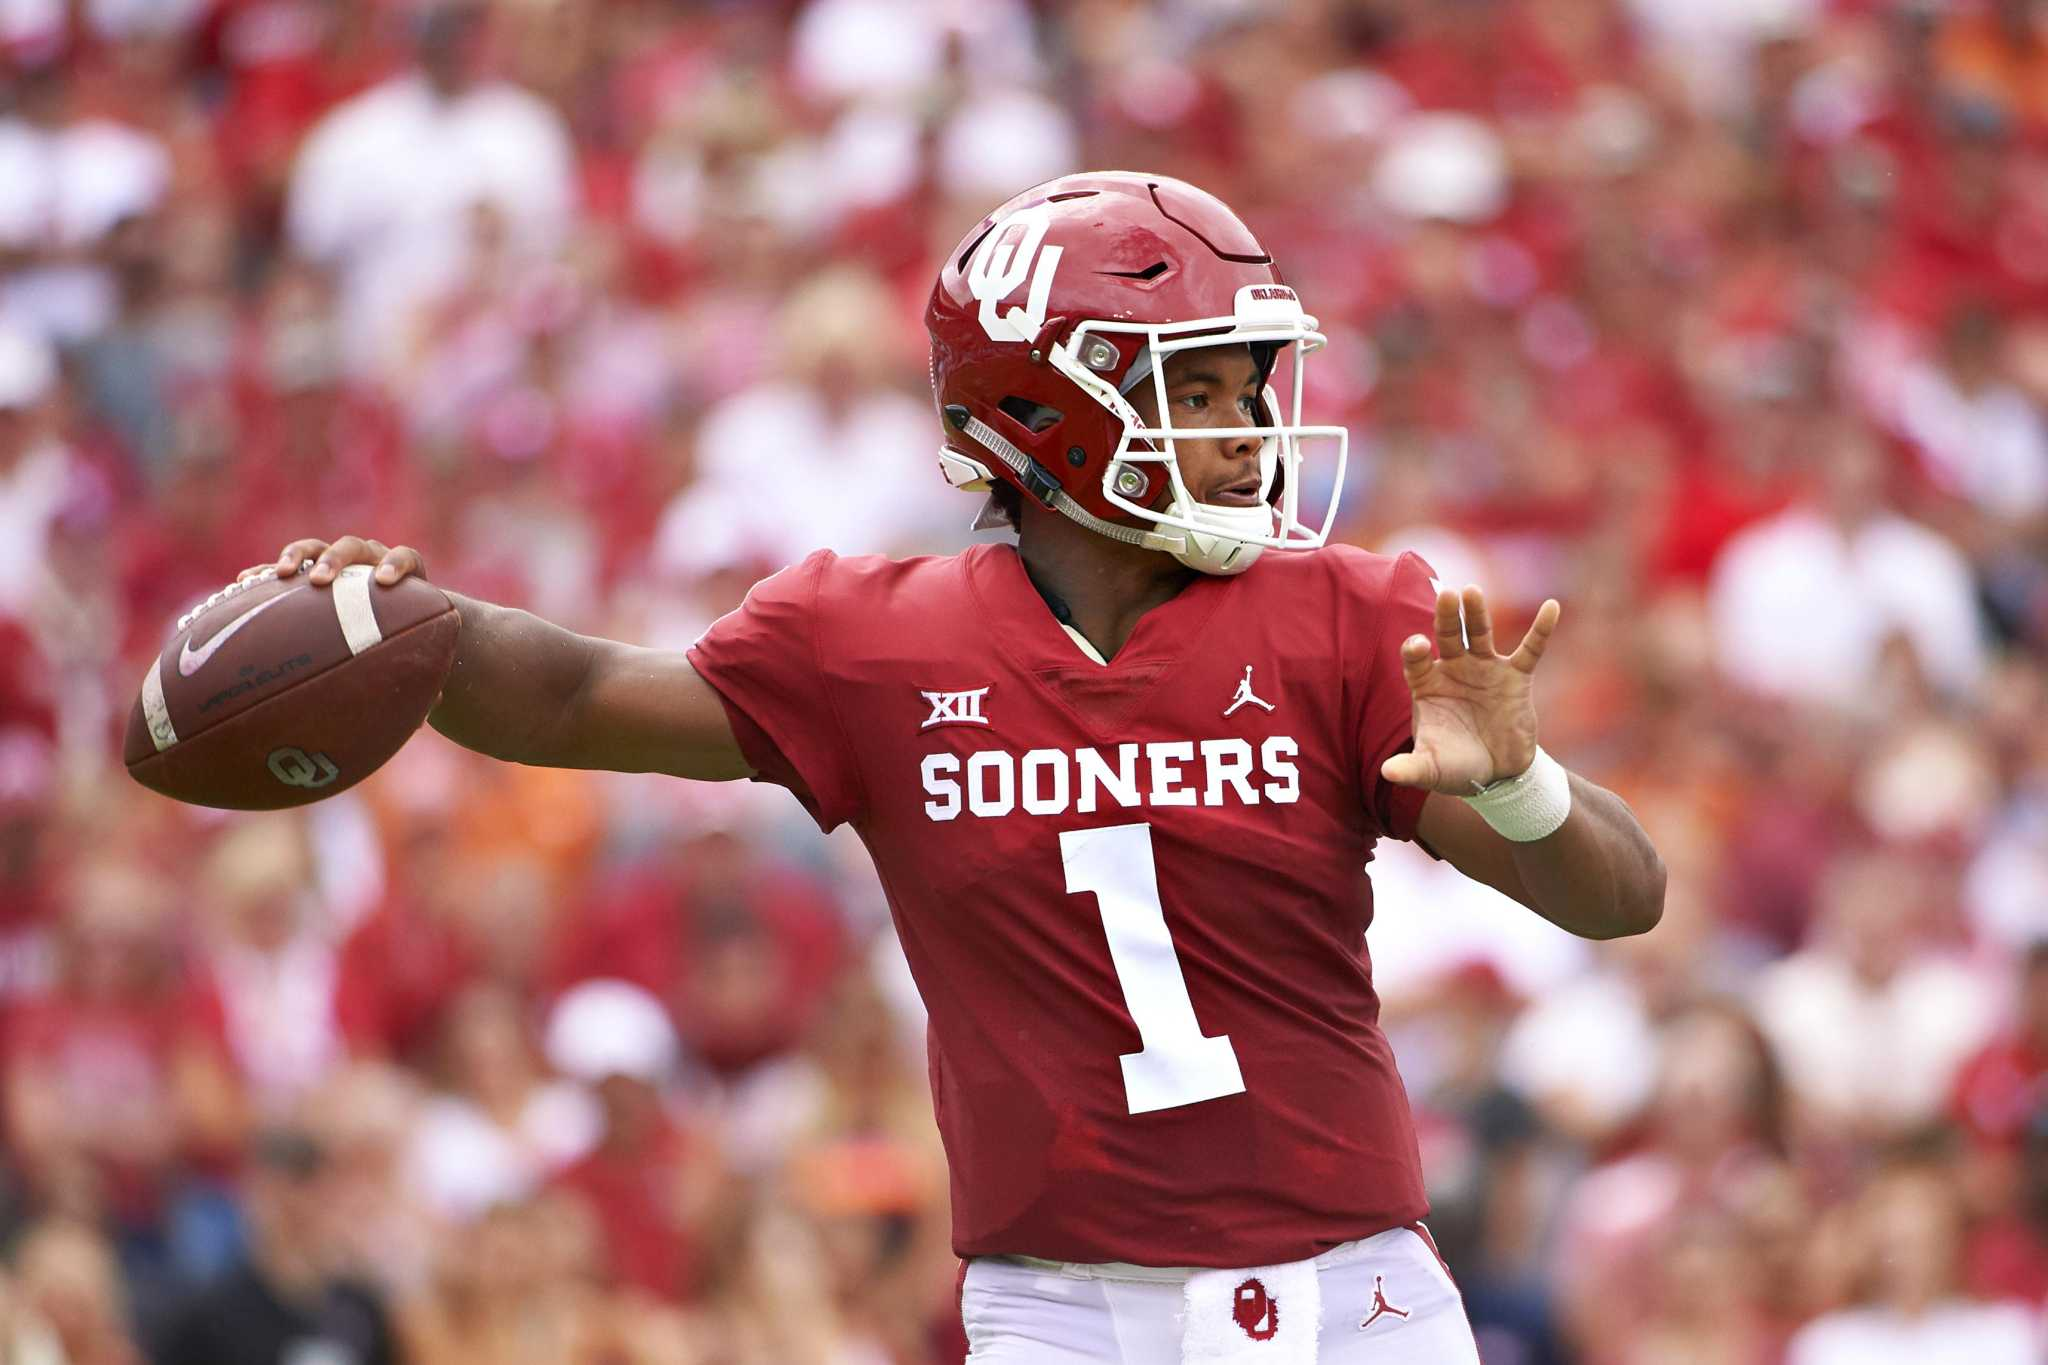 Listen: On mock drafts and the Kyler Murray factor